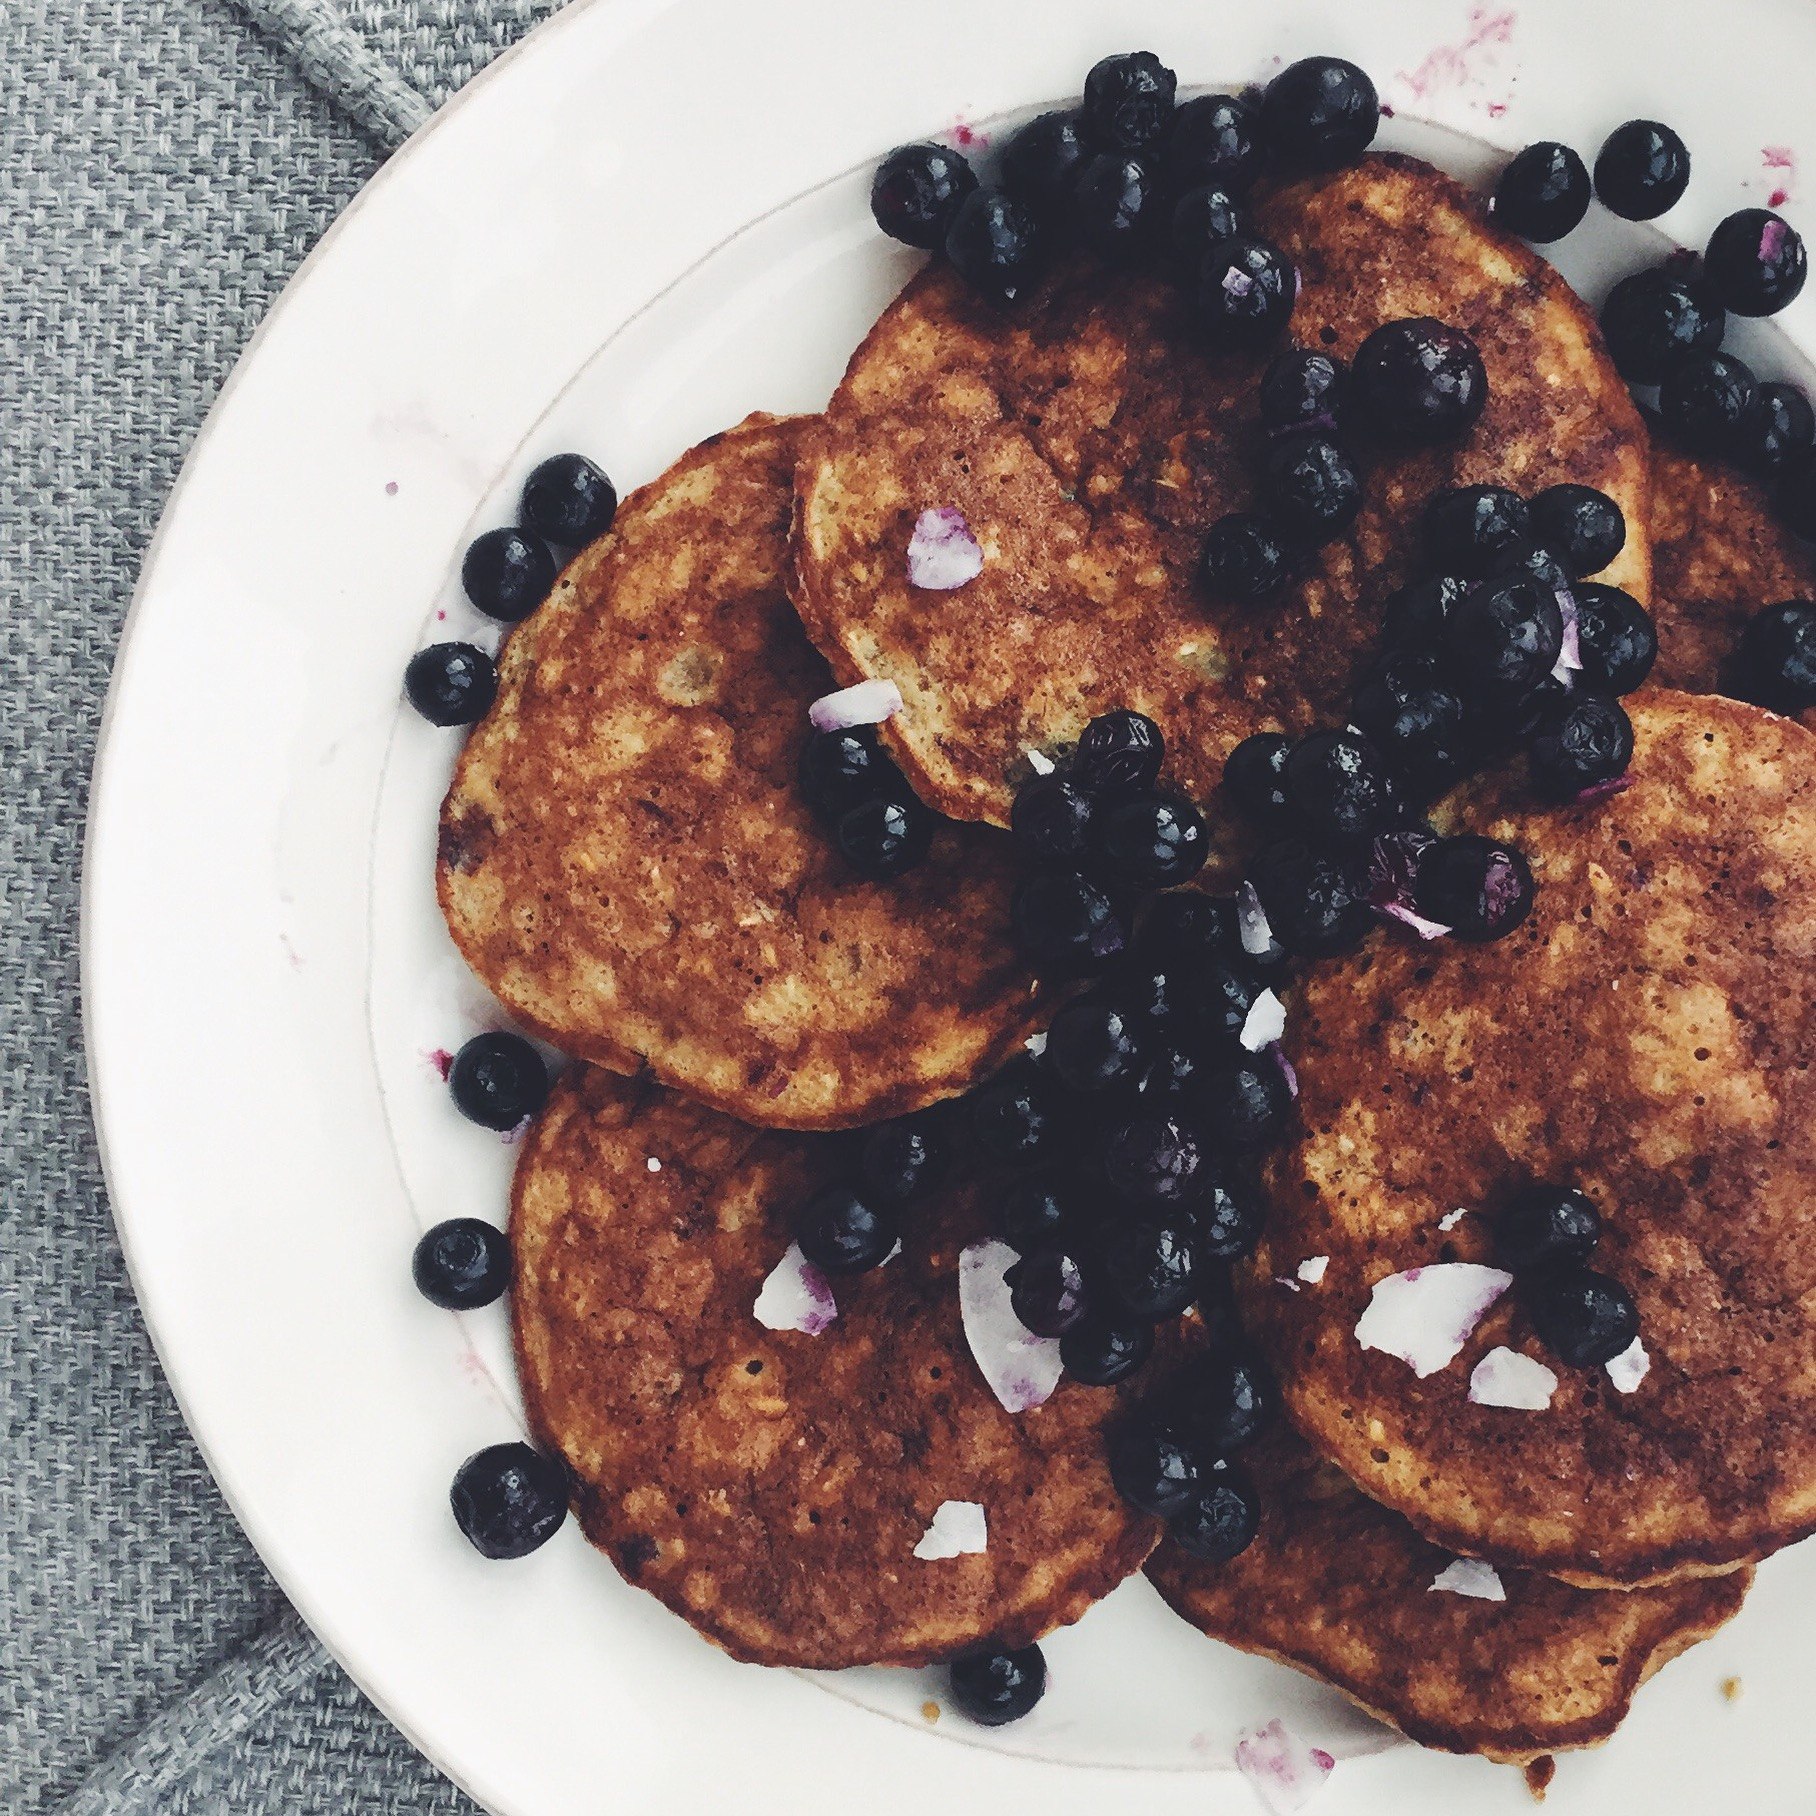 The BEST healthy pancakes i've ever had.